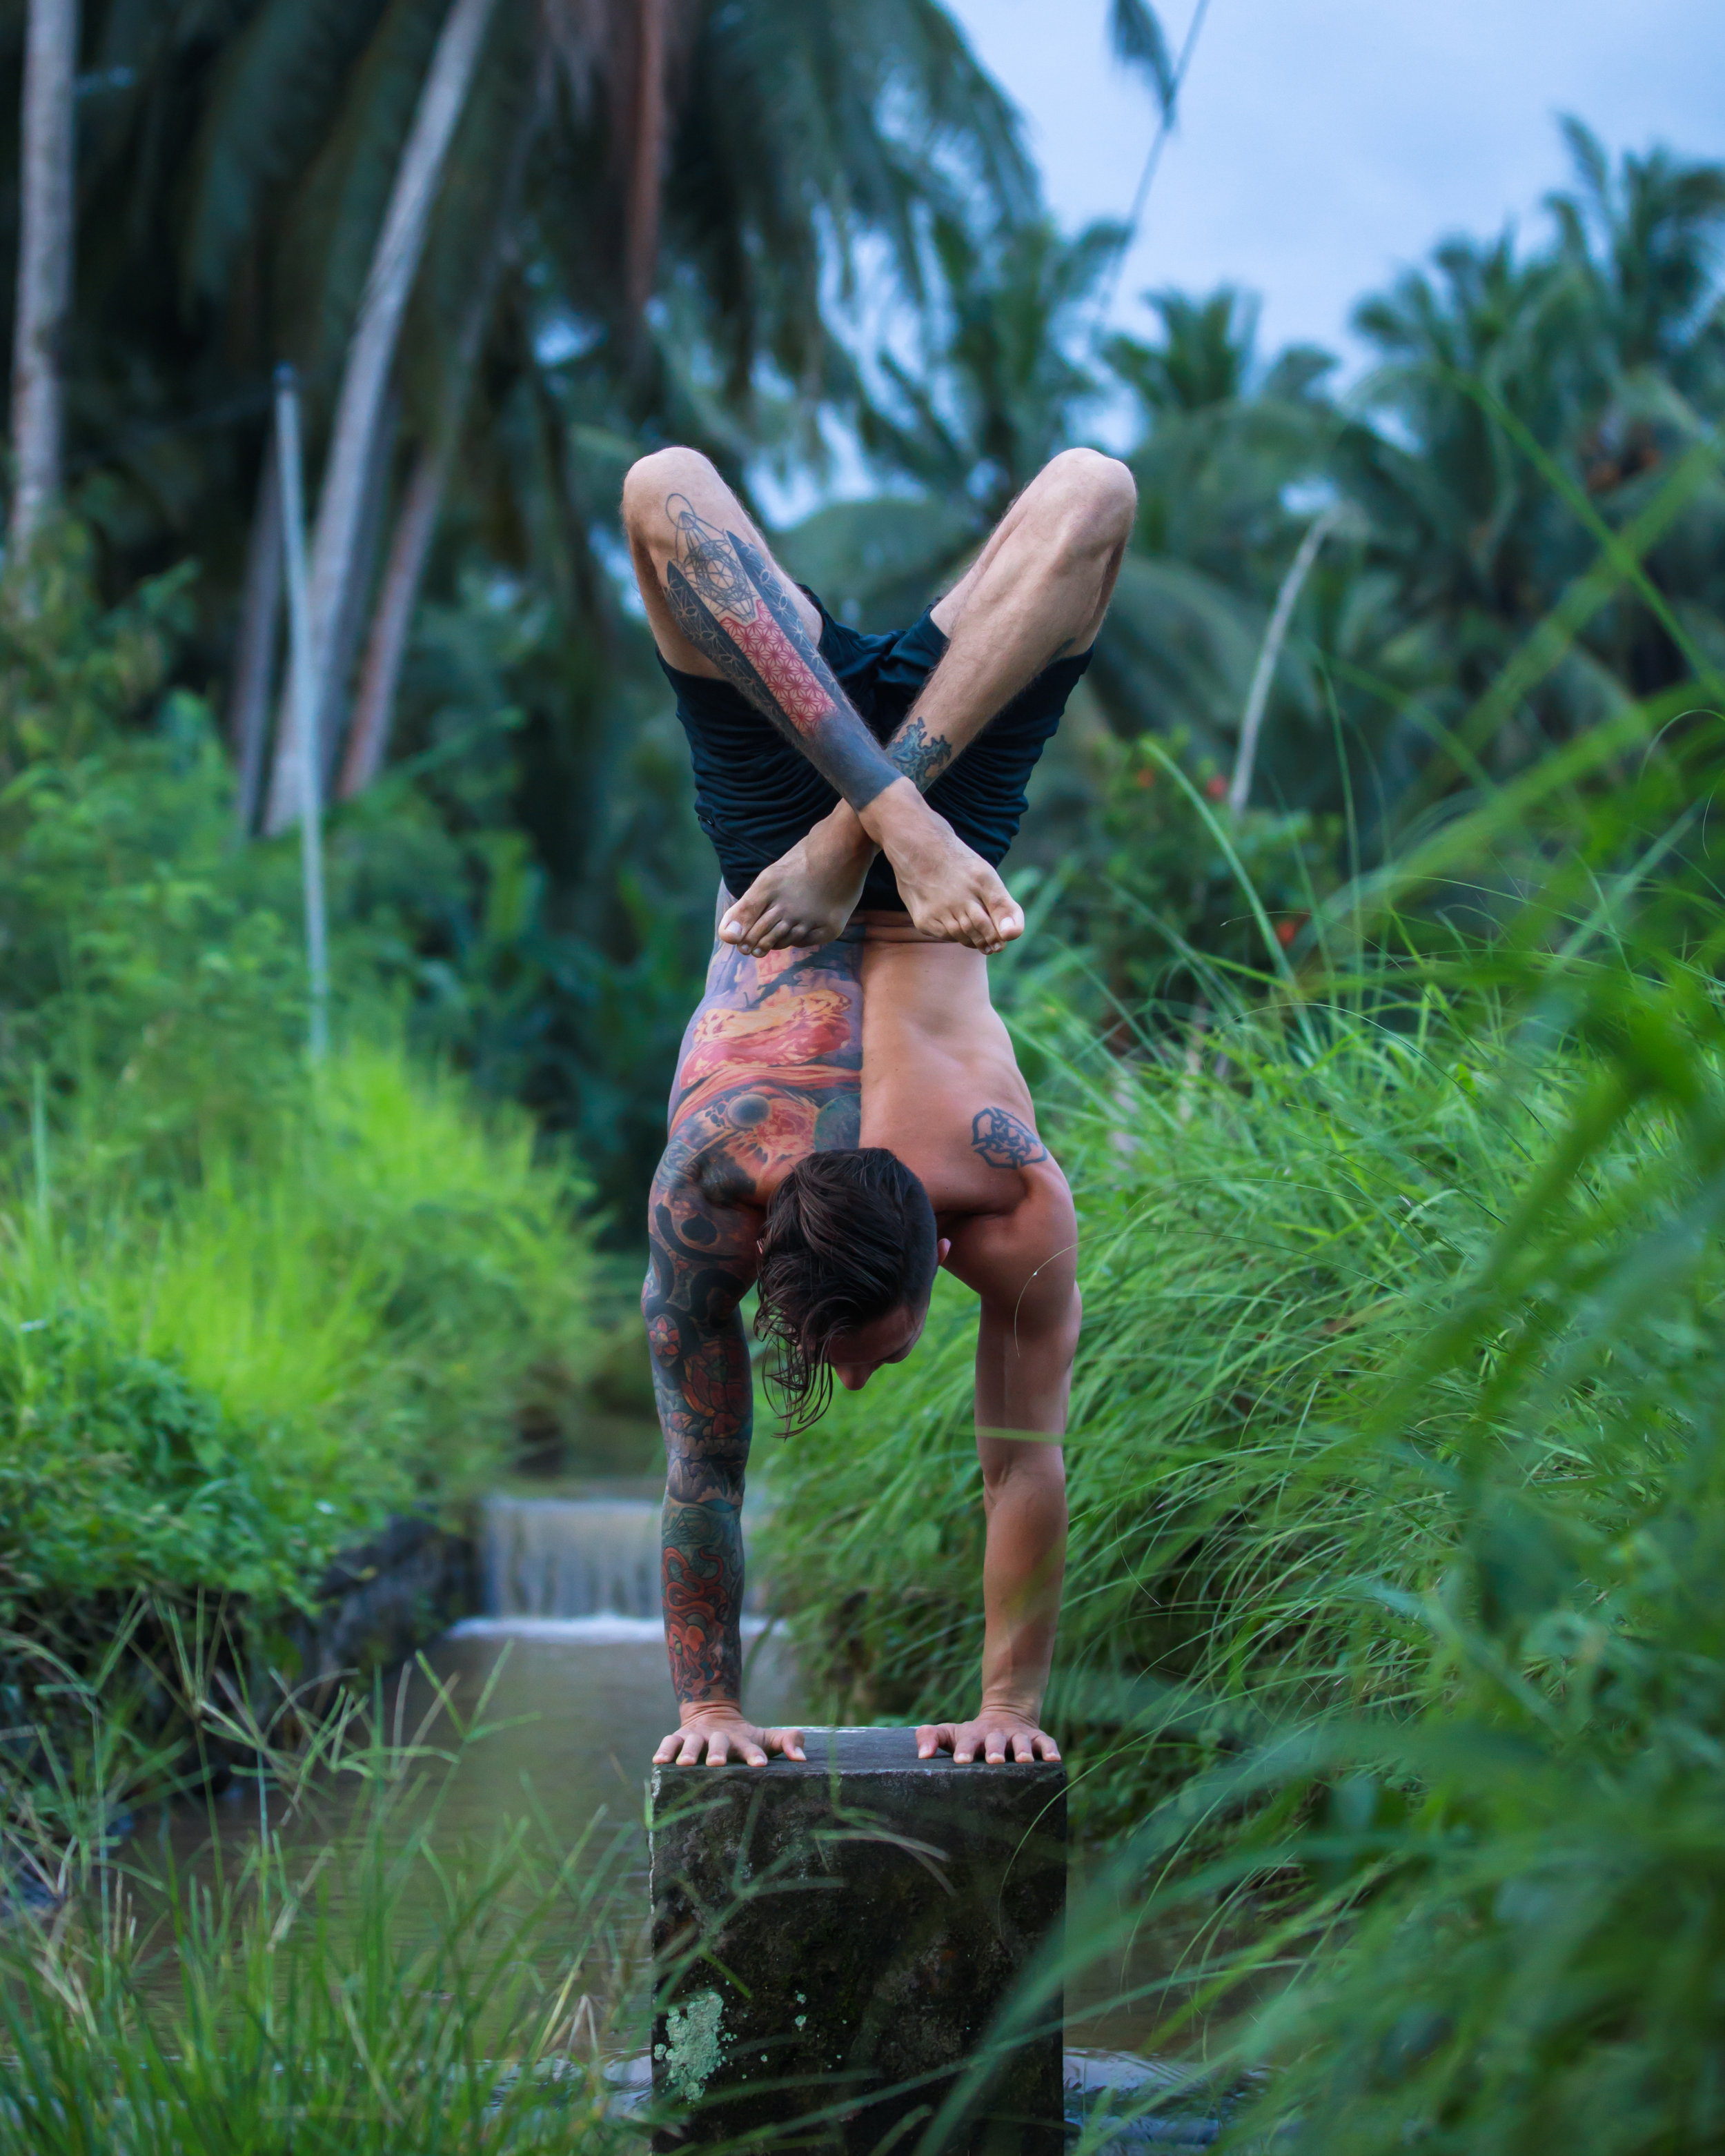 Daily Schedule - Monday8:00 am – 9:00 am Guided Meditation and Sequenced Pranayama Practice9:00 am – 12:00 pm Spiral Line Myofascial Meridian Sequenced Vinyasa Class2:00 pm – 5:00 pm Inversion conditioning training and flexibility work, handstand line basics, refined handstand entryTuesday8:00 am – 9:00 am Guided Meditation and Sequenced Pranayama Practice9:00 am – 12:00 pm Lateral Line Myofascial Meridian Sequenced Vinyasa Class2:00 pm – 5:00 pm Inversion conditioning training and flexibility work, line work, moving shapes and changing drishti, one arm handstand trainingWednesday8:00 am – 9:00 am Guided Meditation and Sequenced Pranayama Practice9:00 am – 12:00 pm Functional Line and Deep Front Line Myofascial Meridian Sequenced Vinyasa Class2:00 pm – 5:00 pm Inversion conditioning and flexibility work, hollowbacks, Handstand flags, one arm handstand trainingThursday8:00 am – 9:00 am Guided Meditation and Sequenced Pranayama Practice9:00 am – 12:00 pm Superficial Front line and Superficial Back line Myofascial Meridian Sequenced Vinyasa Class2:00 pm – 5:00 pm Inversion conditioning and flexibility work, Press Handstand, Stalder Press, Arm Balance Press Transitions, one arm handstand trainingFriday8:00 am – 9:00 am Guided Meditation and Sequenced Pranayama Practice9:00 am – 12:00 pm Spiral line and Lateral Line Myofascial Meridian Sequenced Vinyasa Class2:00 pm – 5:00 pm Inversion conditioning and flexibility work, one arm handstand training